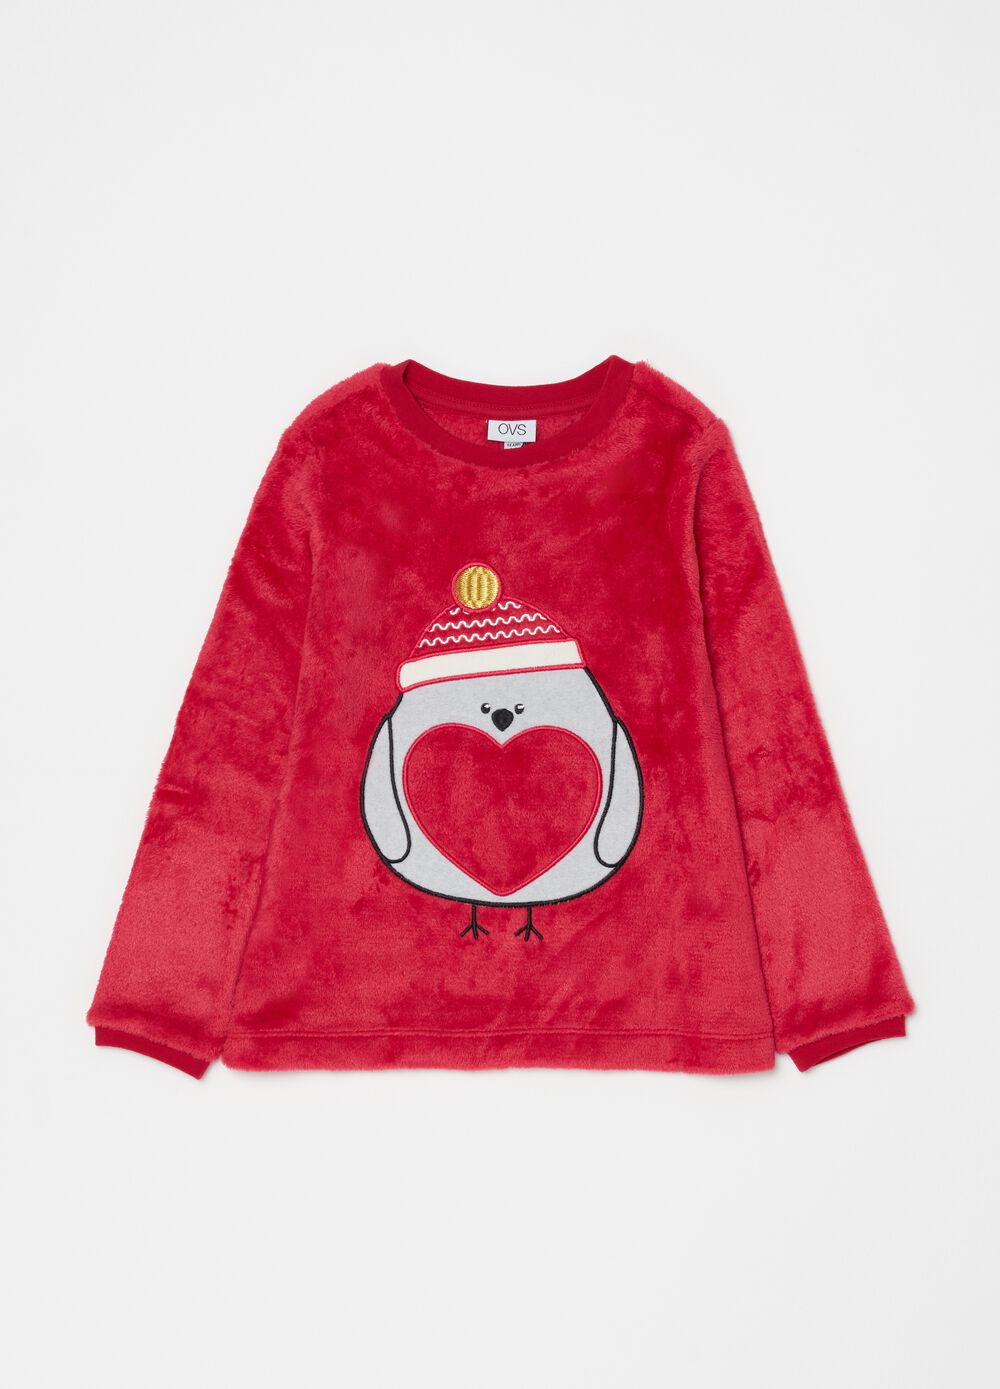 Pyjamas with hearts pattern and embroidery